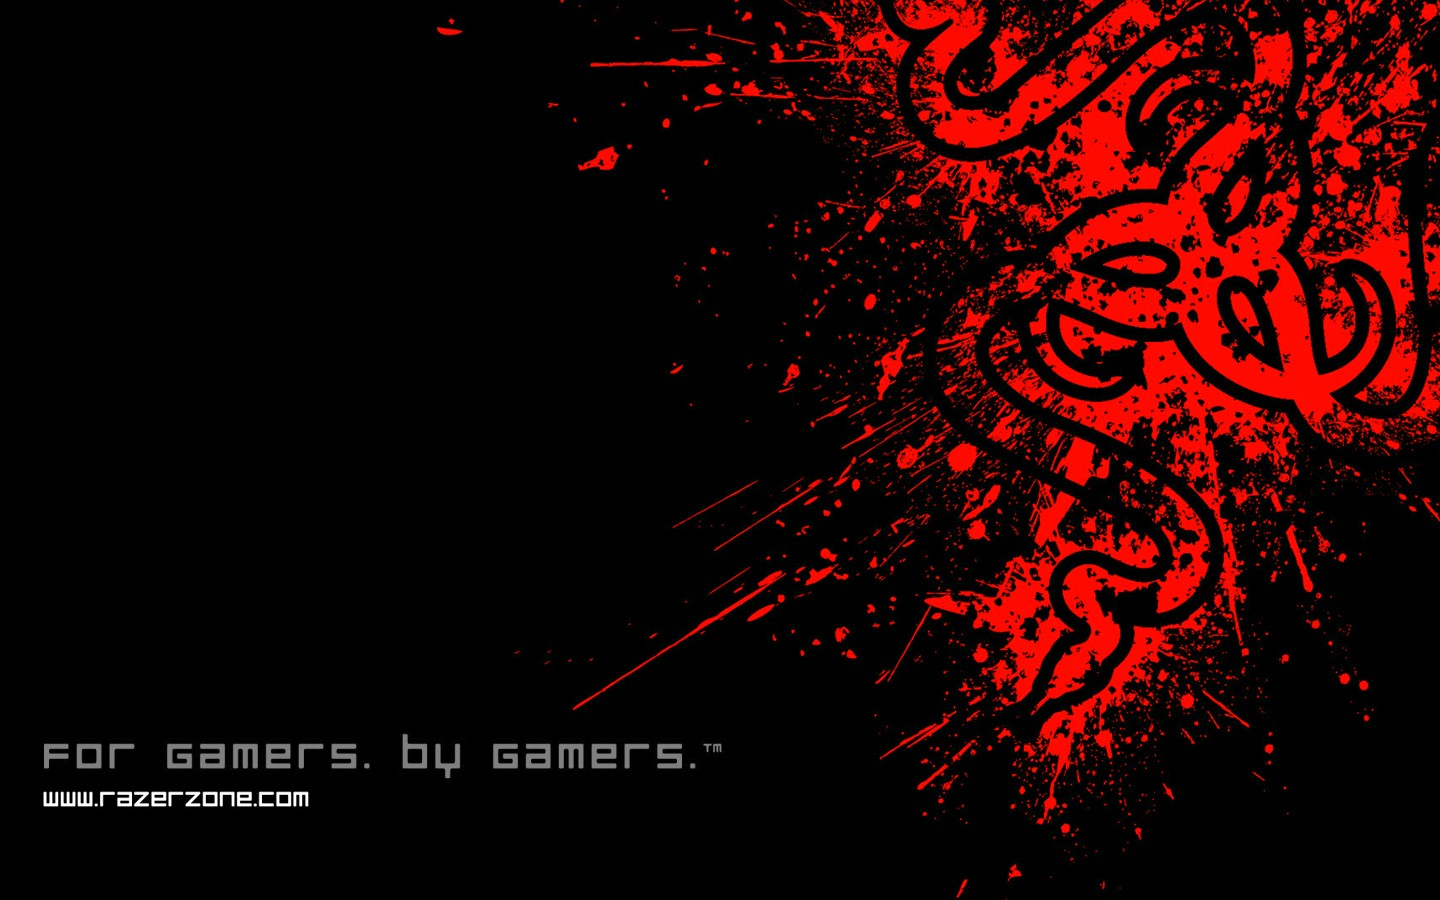 Naga Razer gaming wallpaper | 1440x900 | 189540 | WallpaperUP